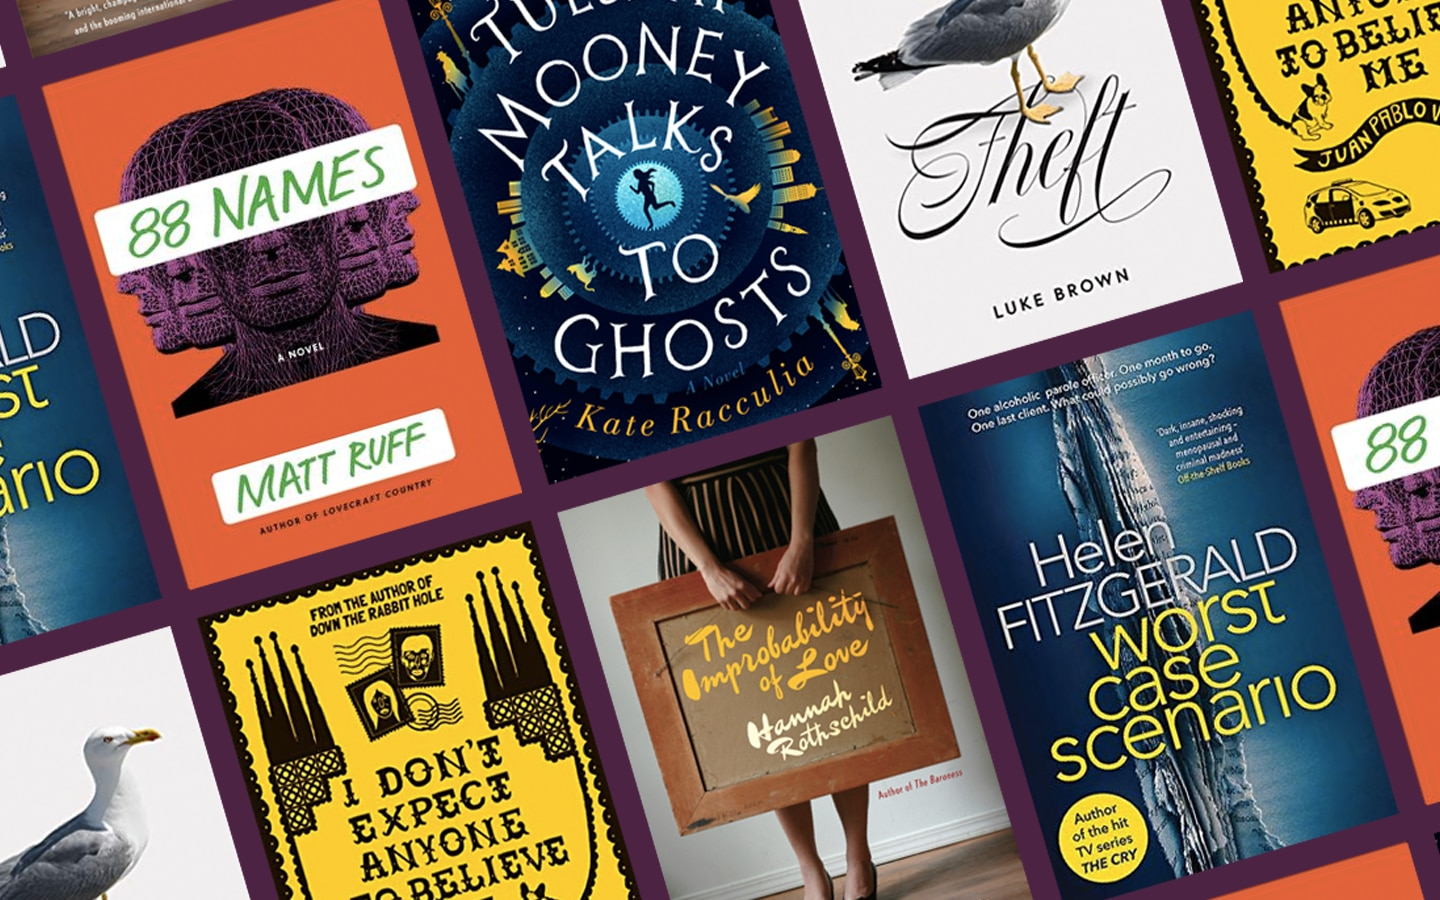 Gaming, 'Theft,' and Dark Humor: Here Are 6 Books To Read This July